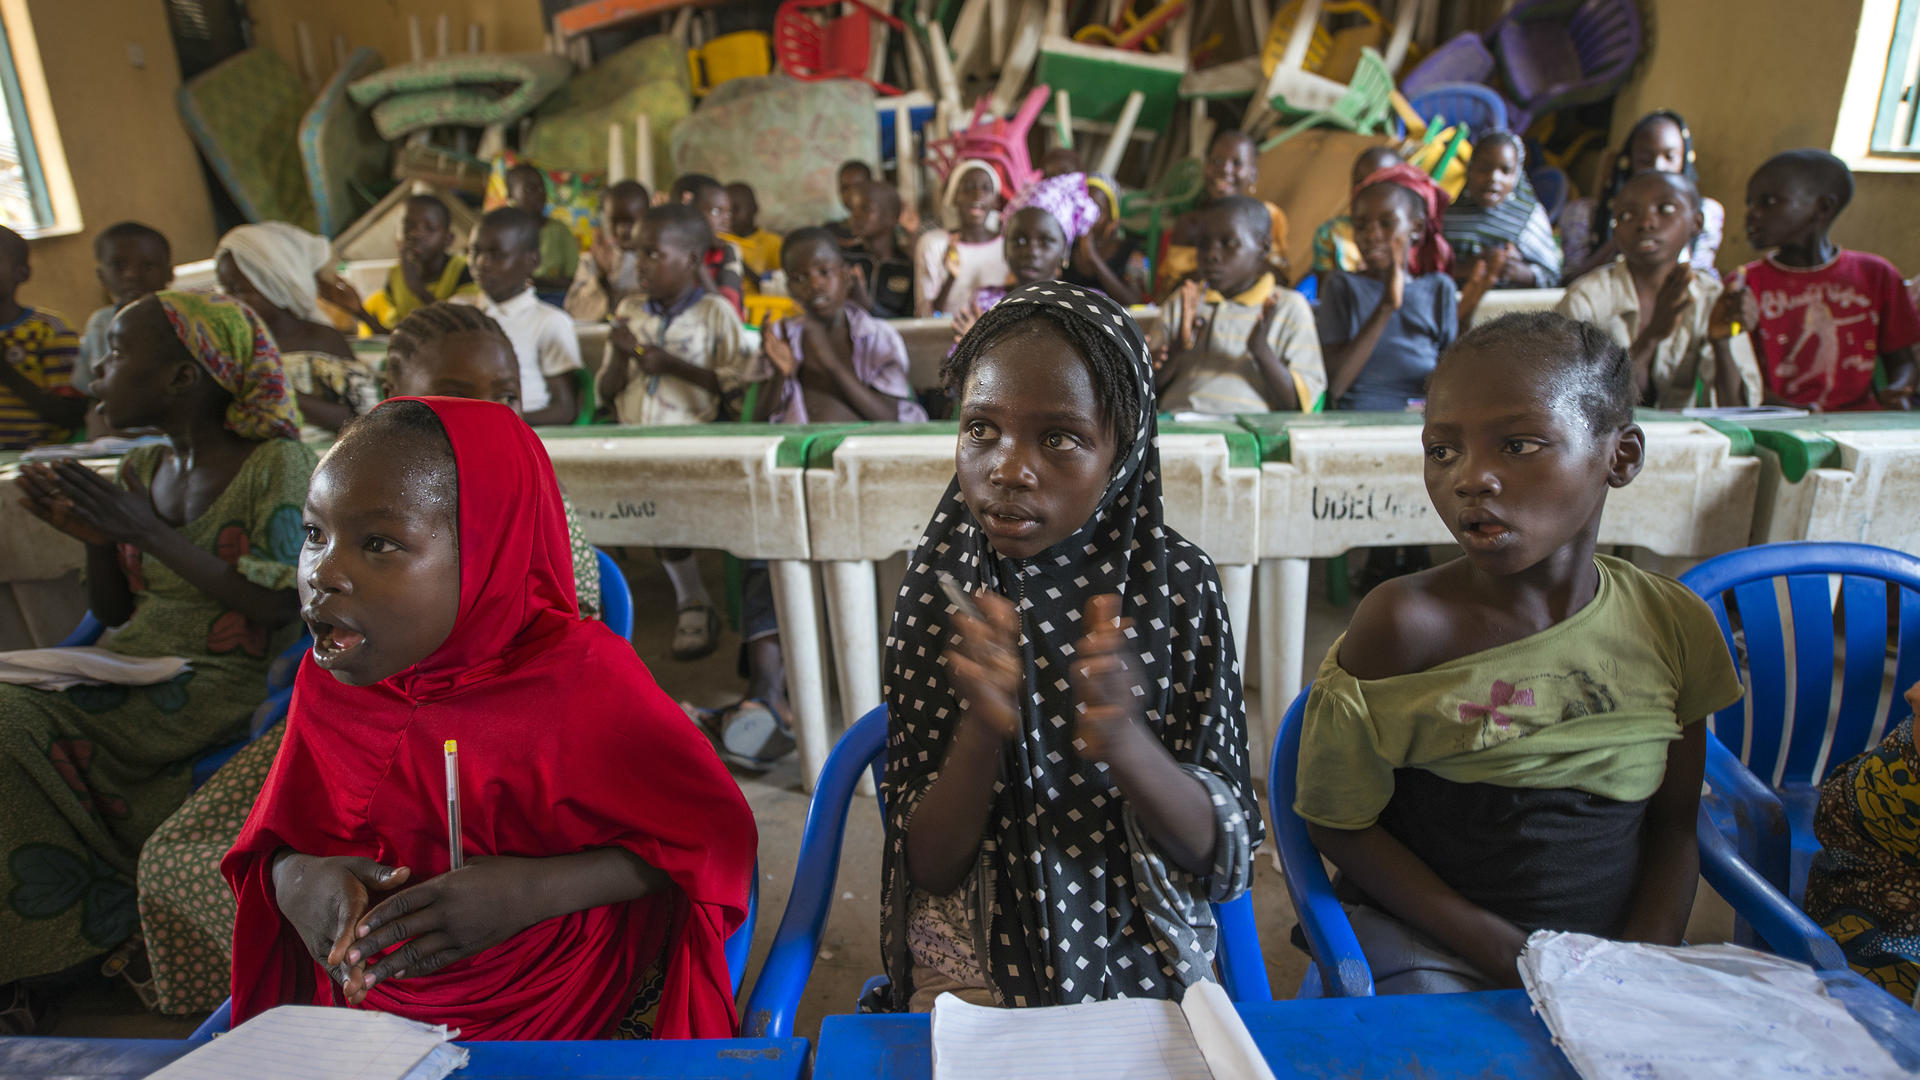 Children take part in an IRC-organized math class in a displacement camp  near Yola, Nigeria.